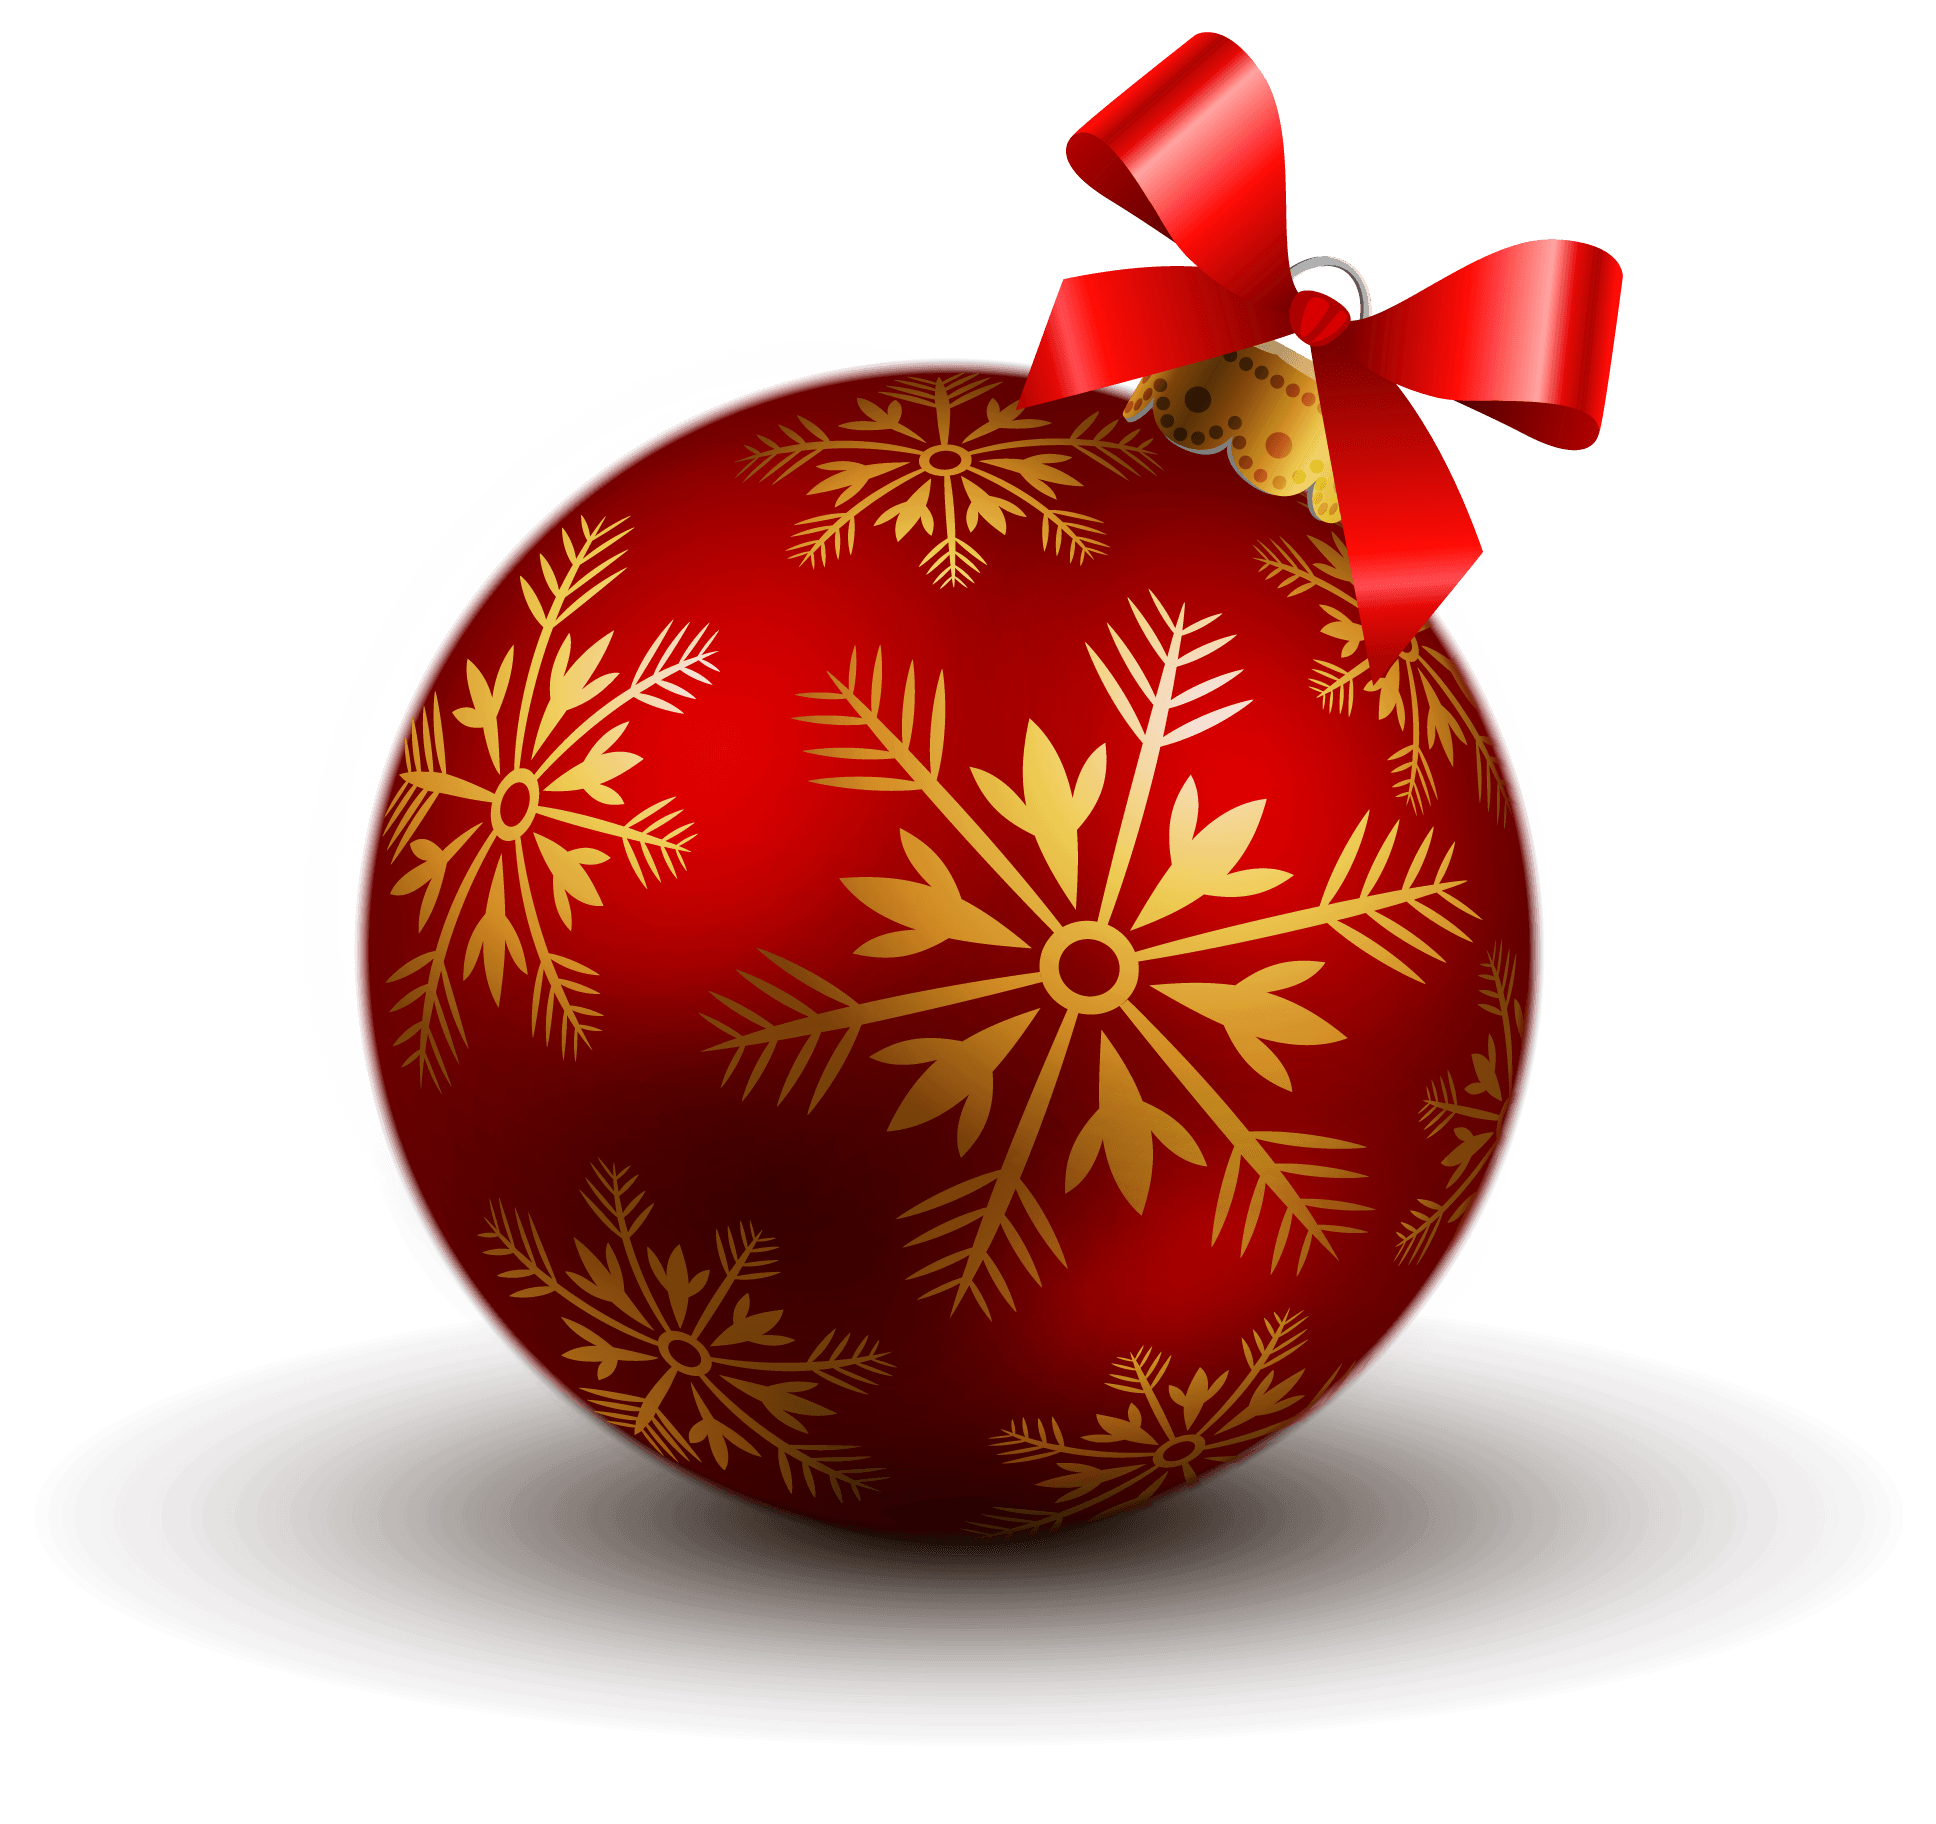 Transparent stickpng ball. Png christmas images